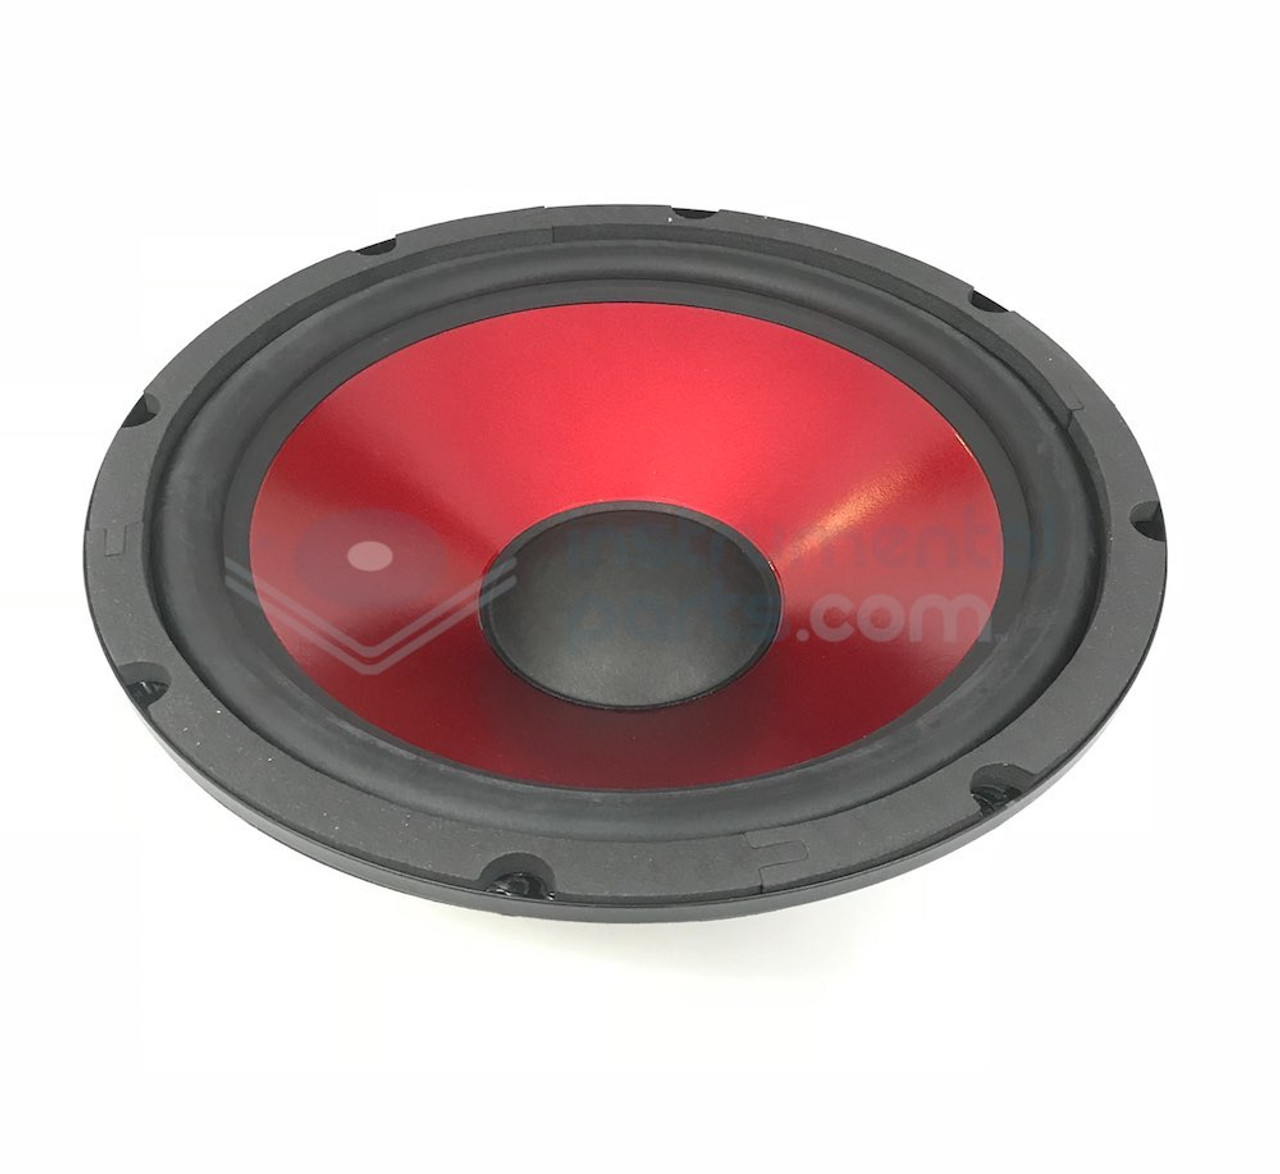 Woofer Speaker Replacement - Ion Road Warrior / etc